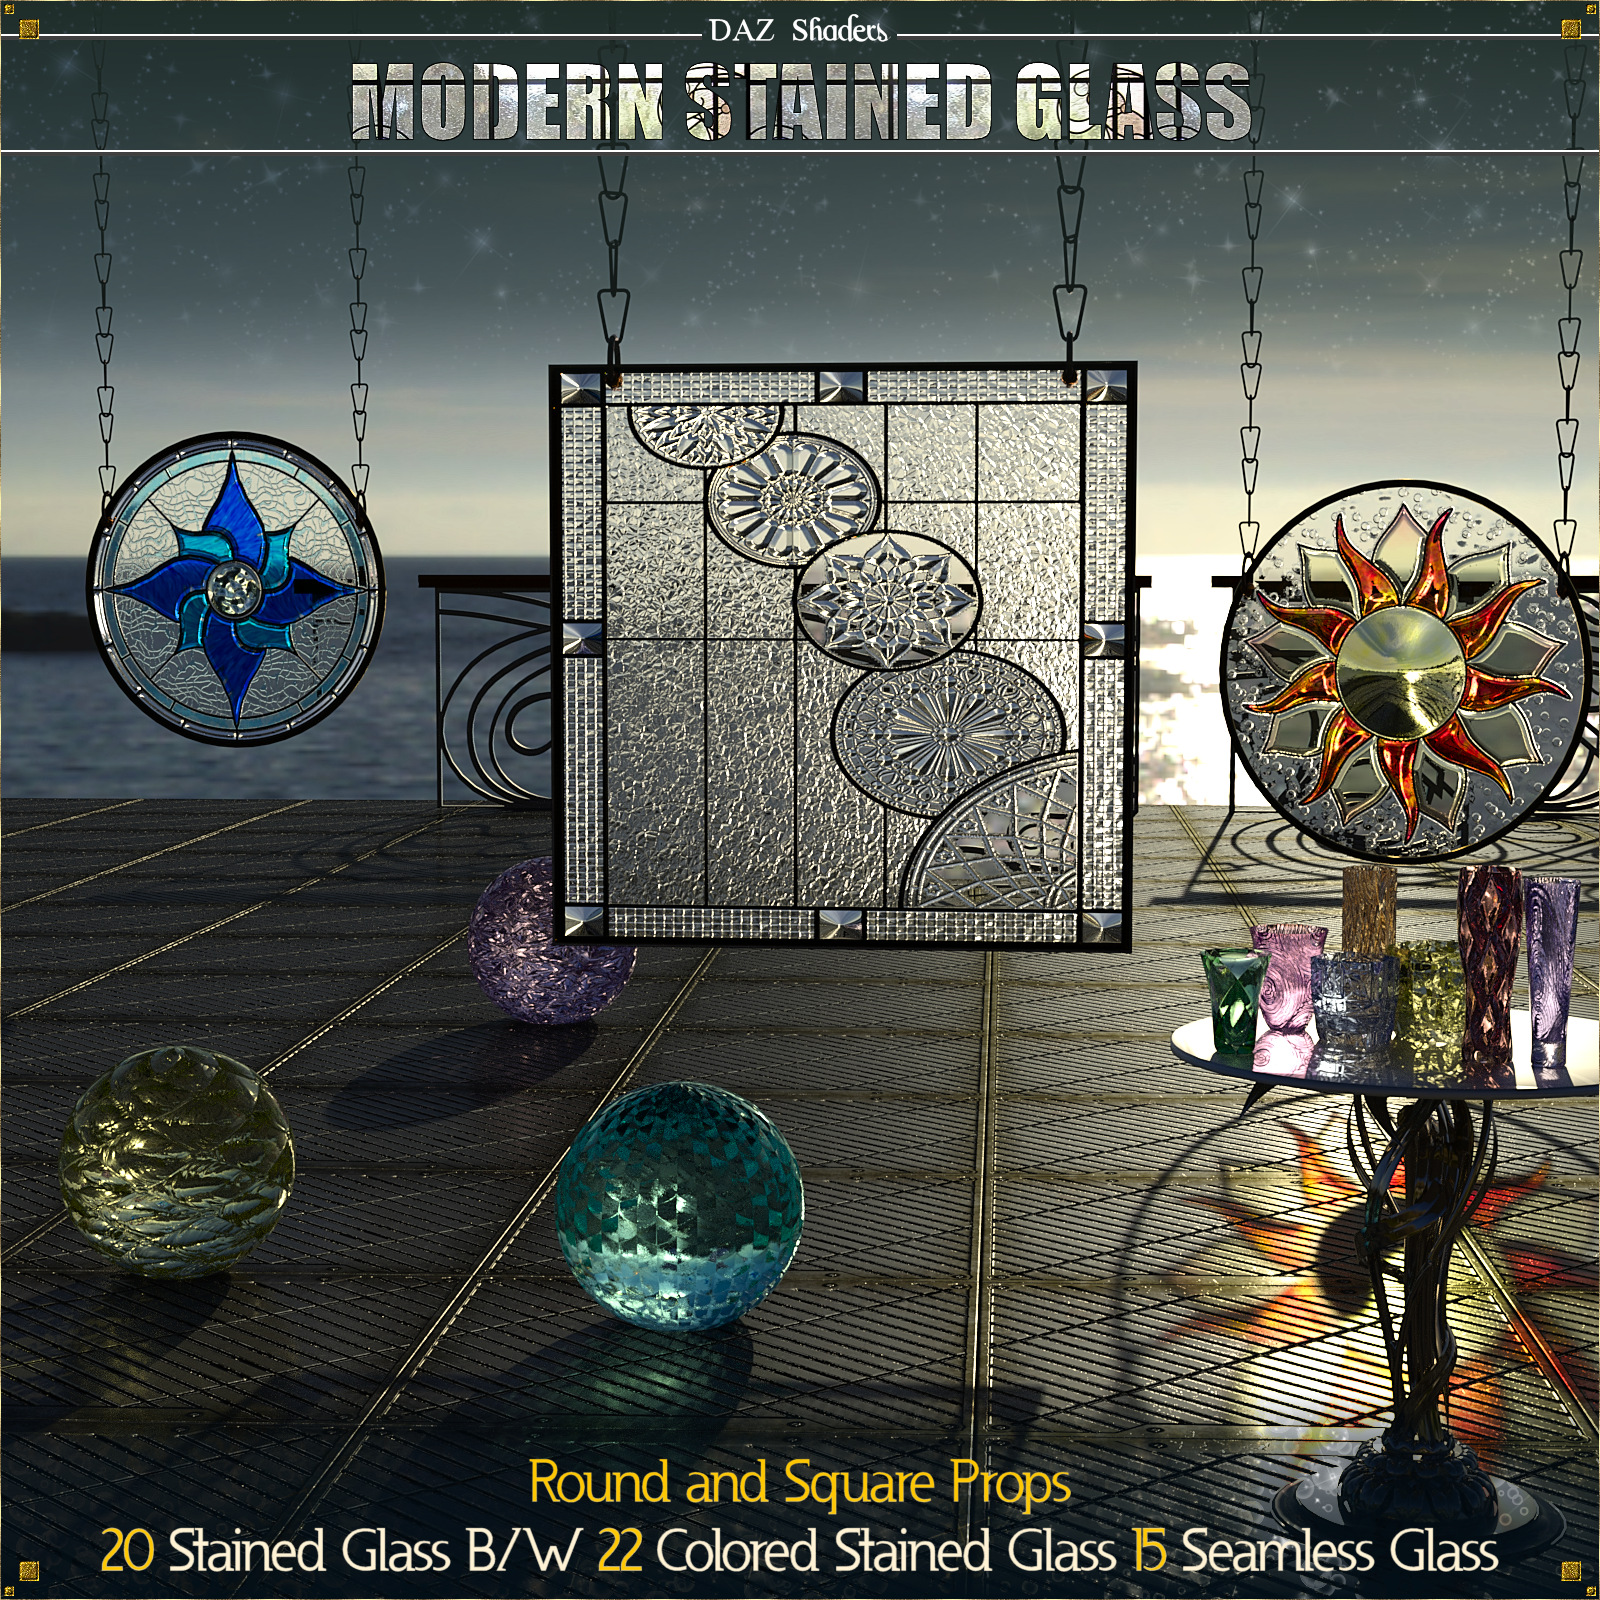 Modern Stained Glass for DAZ